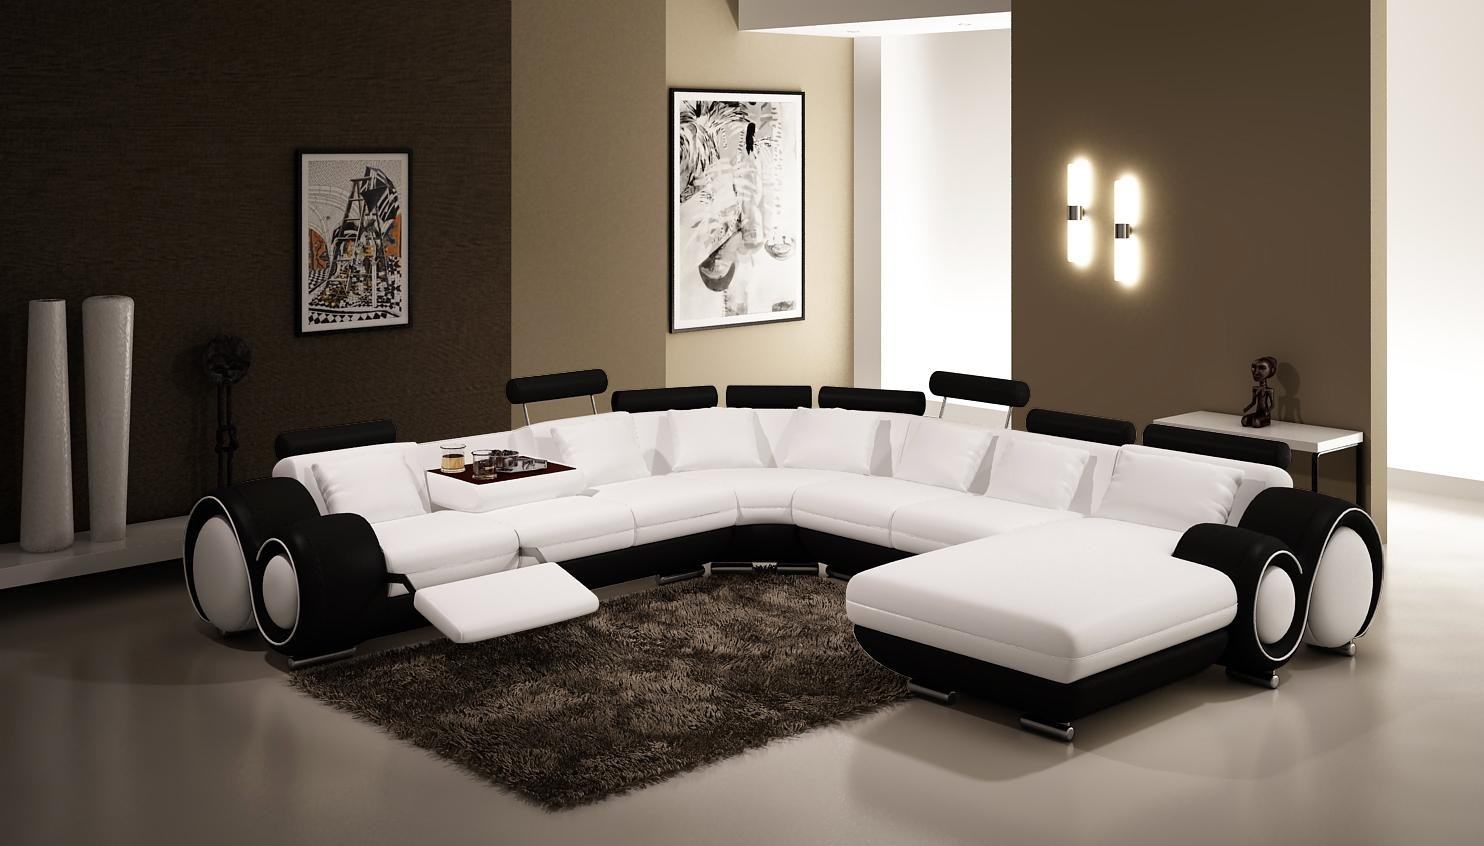 Vig Furniture 4084 Contemporary Black And White Leather Sectional Sofa With Regard To Black And White Sectional Sofa (View 2 of 15)